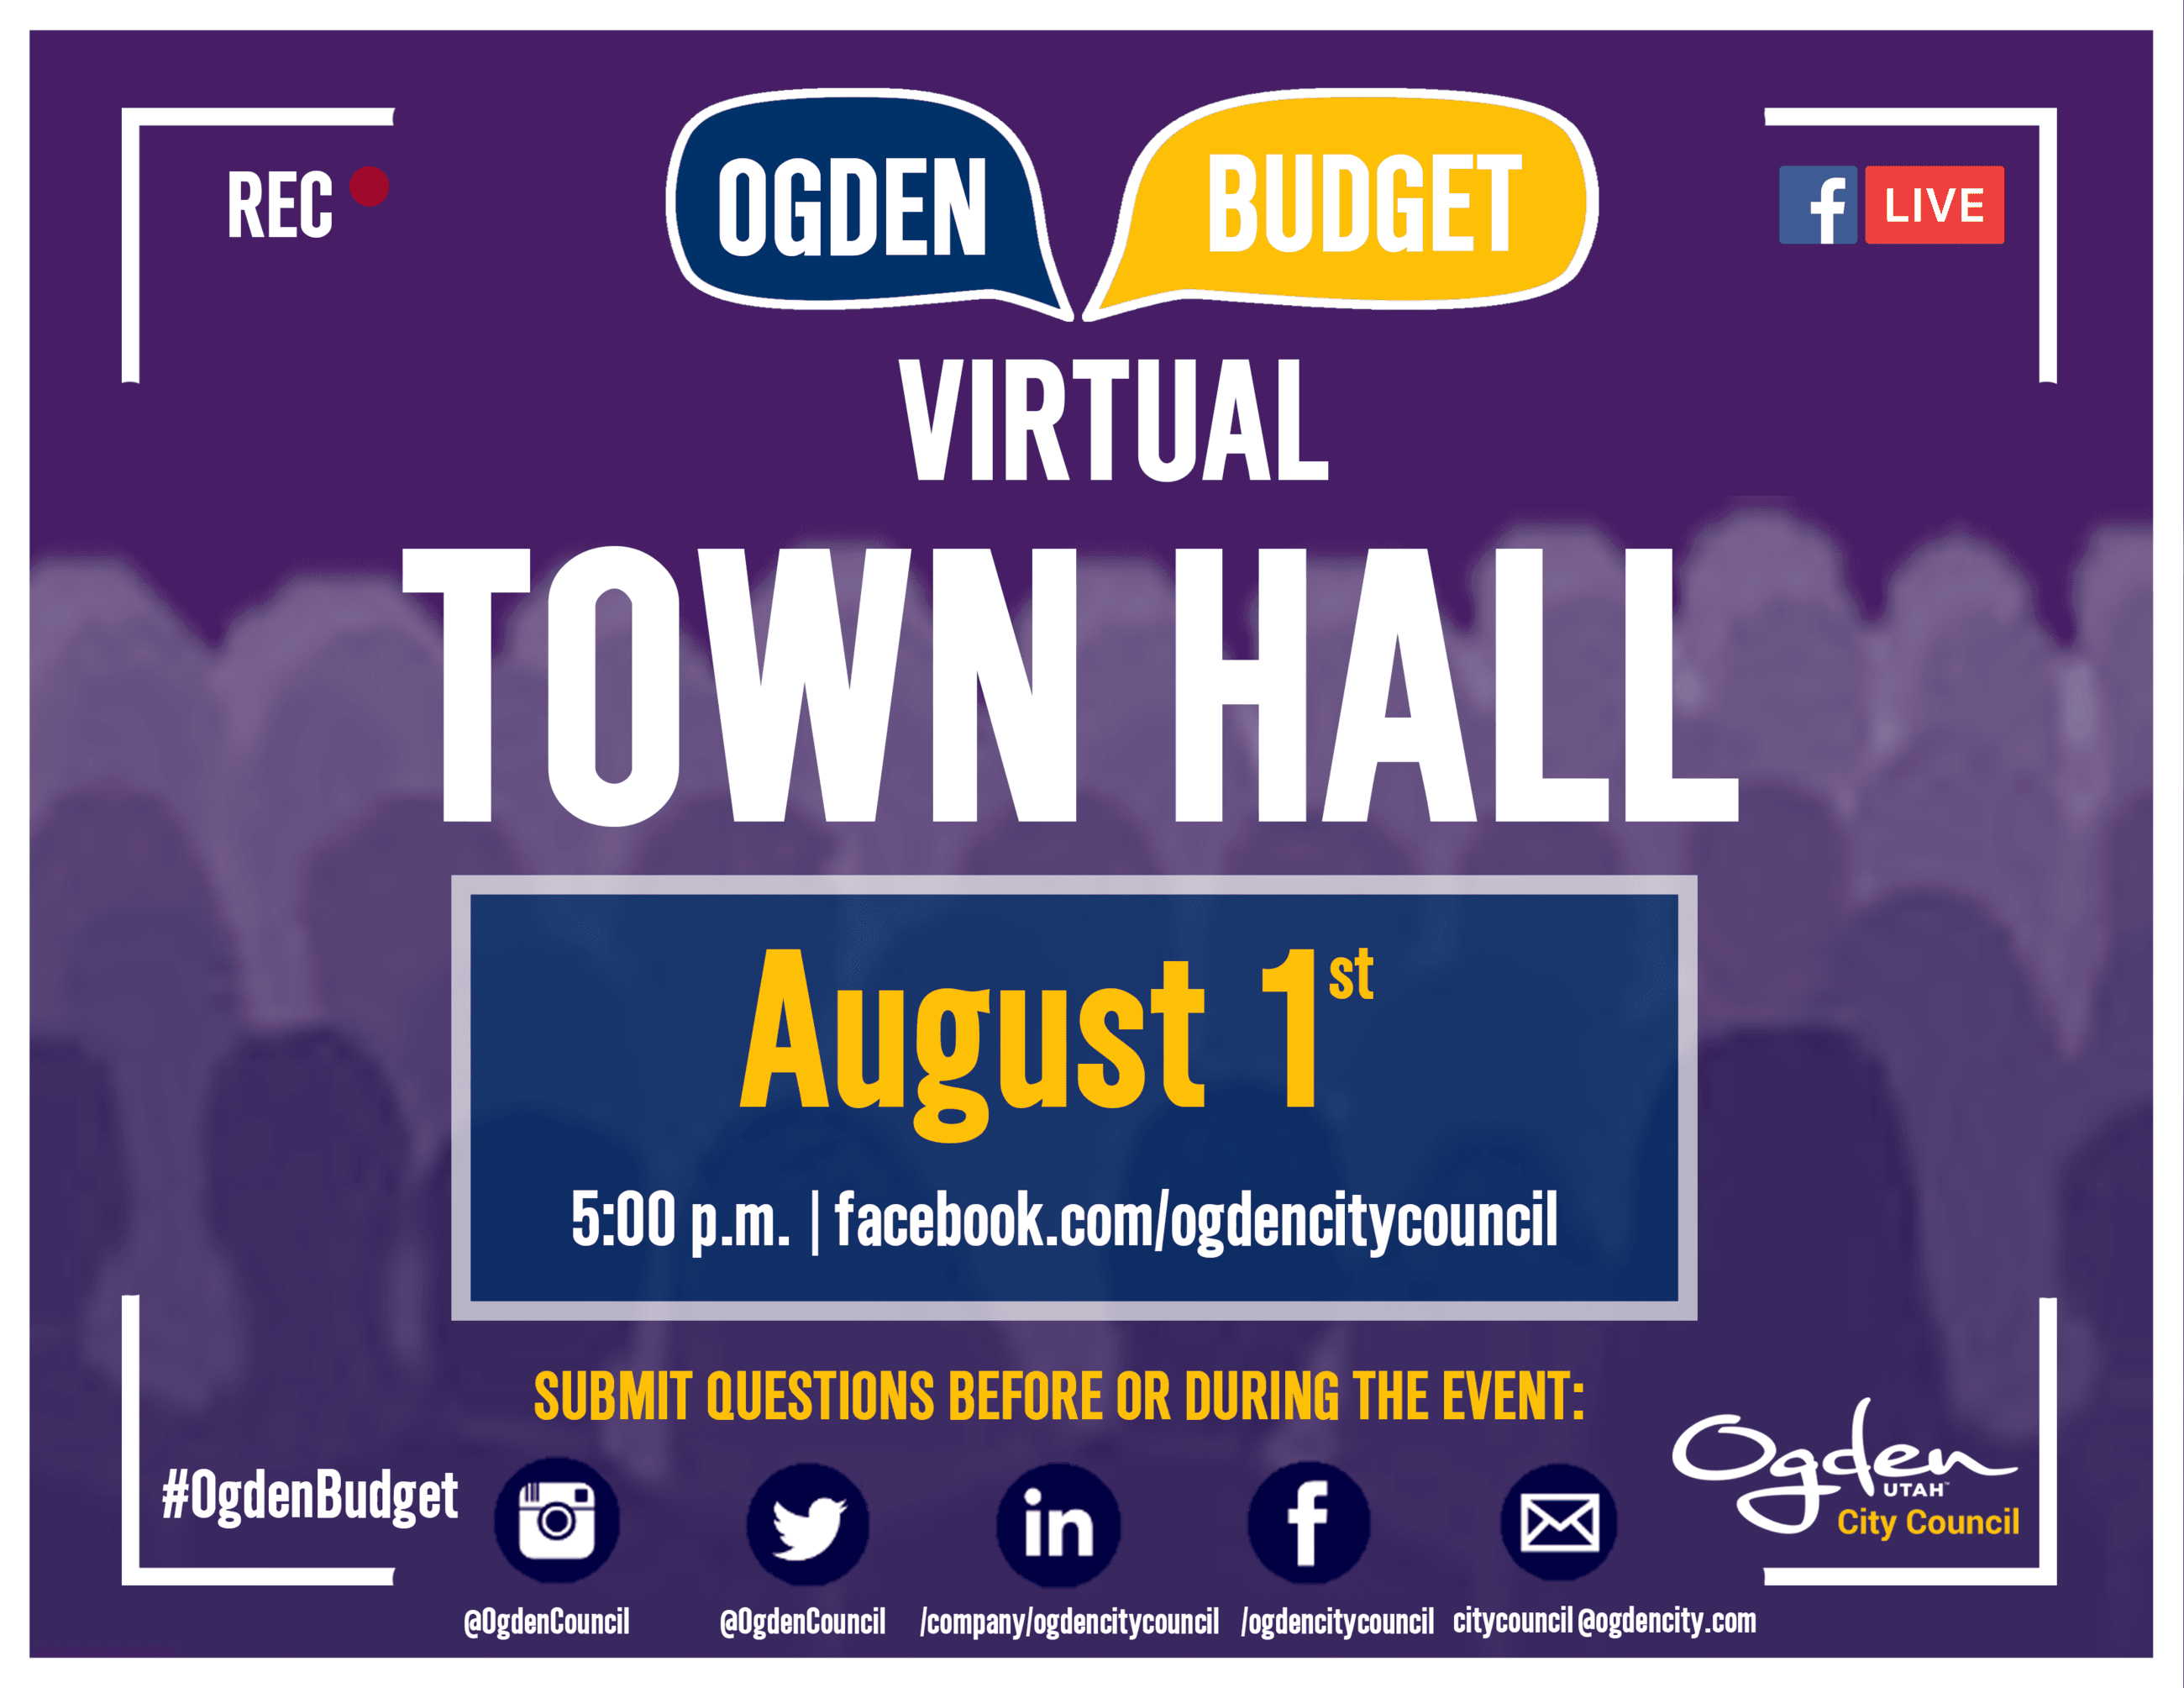 Second Virtual Town Hall on Budget